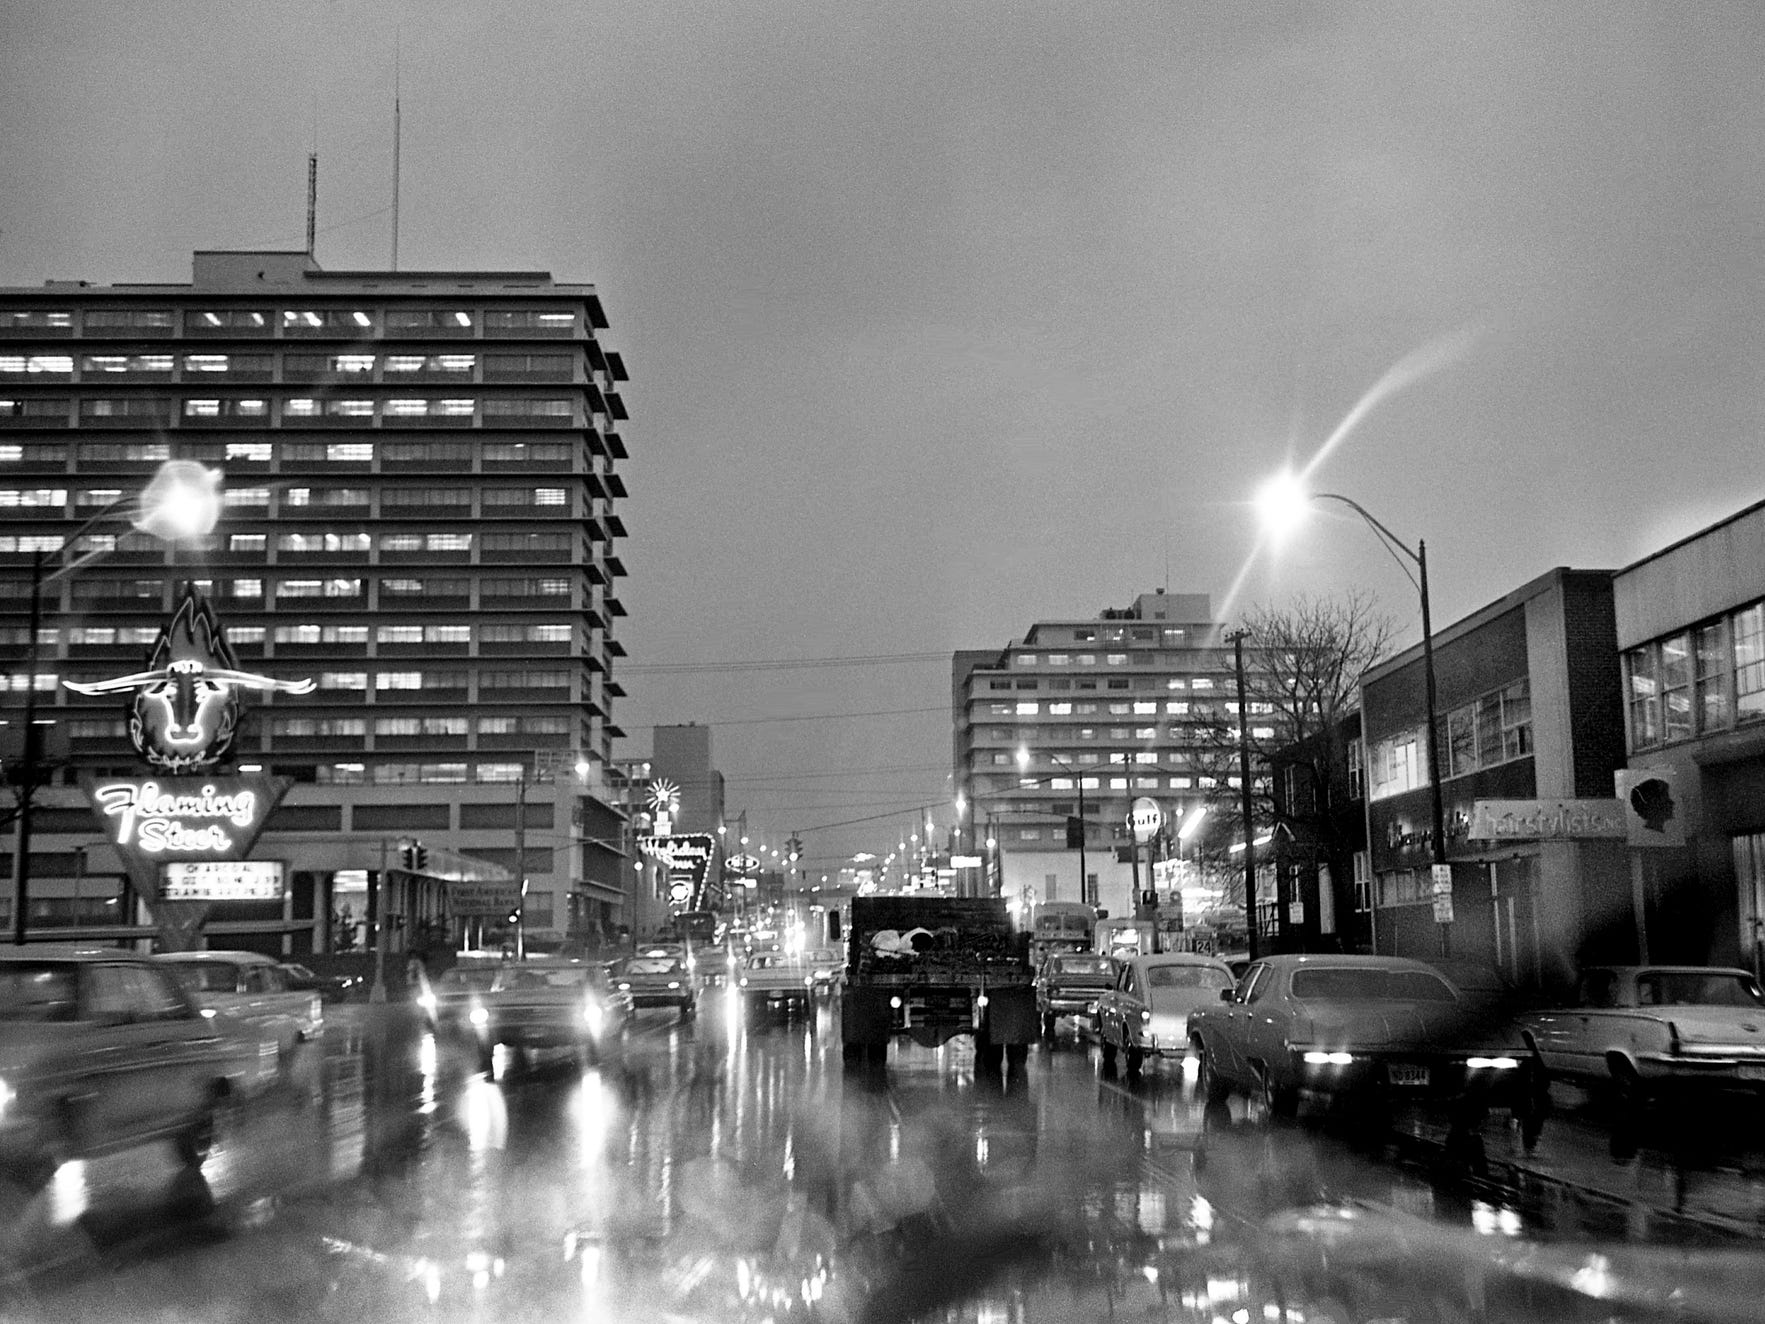 A steady rain falls on West End Avenue on Nov. 27, 1968. By midnight, 3.16 inches of rain had fallen, the most since March 1967, and more is expected the next day.